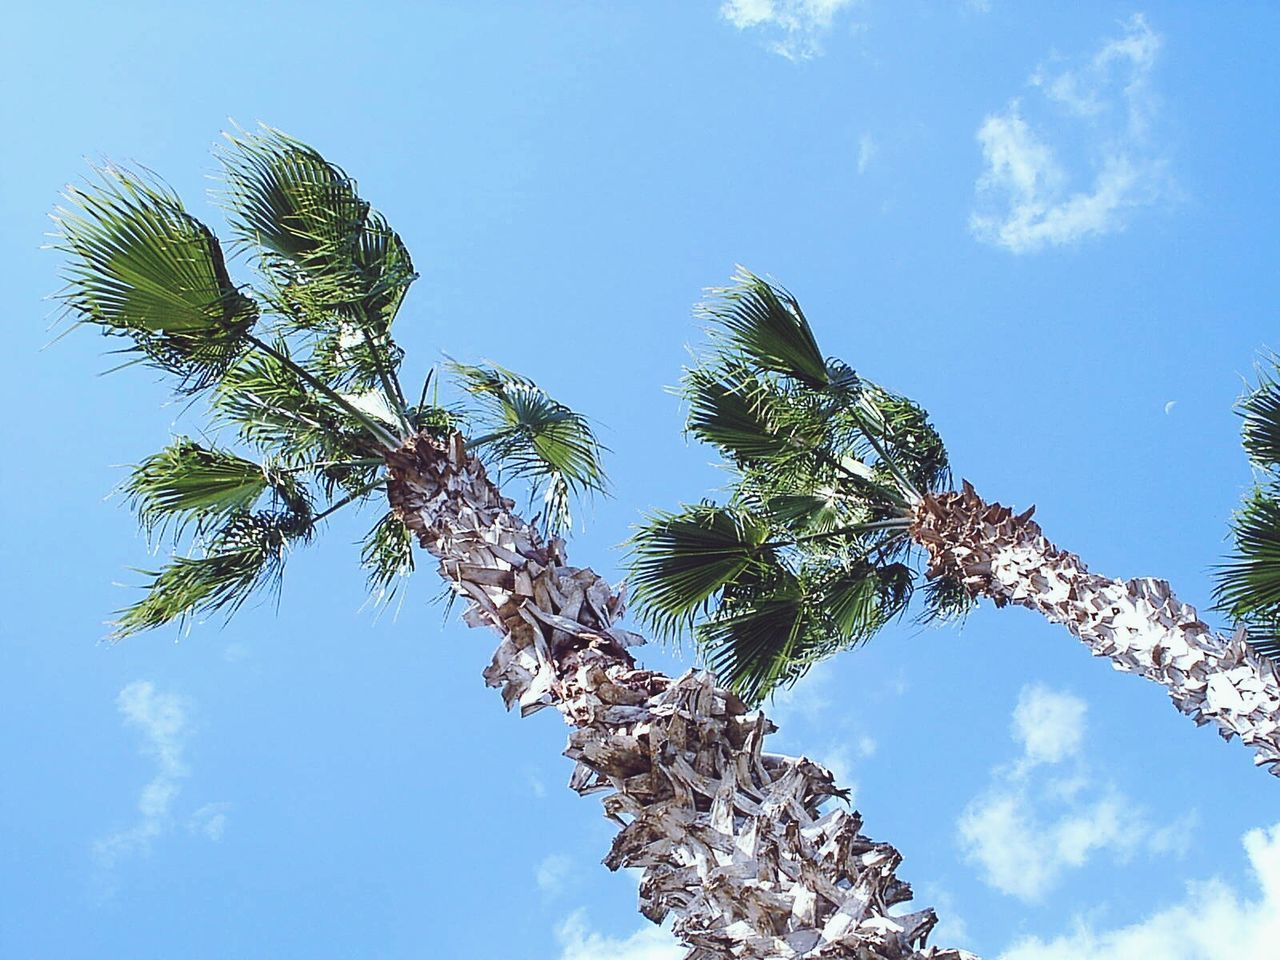 low angle view, tree, sky, nature, growth, beauty in nature, day, blue, branch, outdoors, no people, tranquility, cloud - sky, scenics, palm tree, flower, freshness